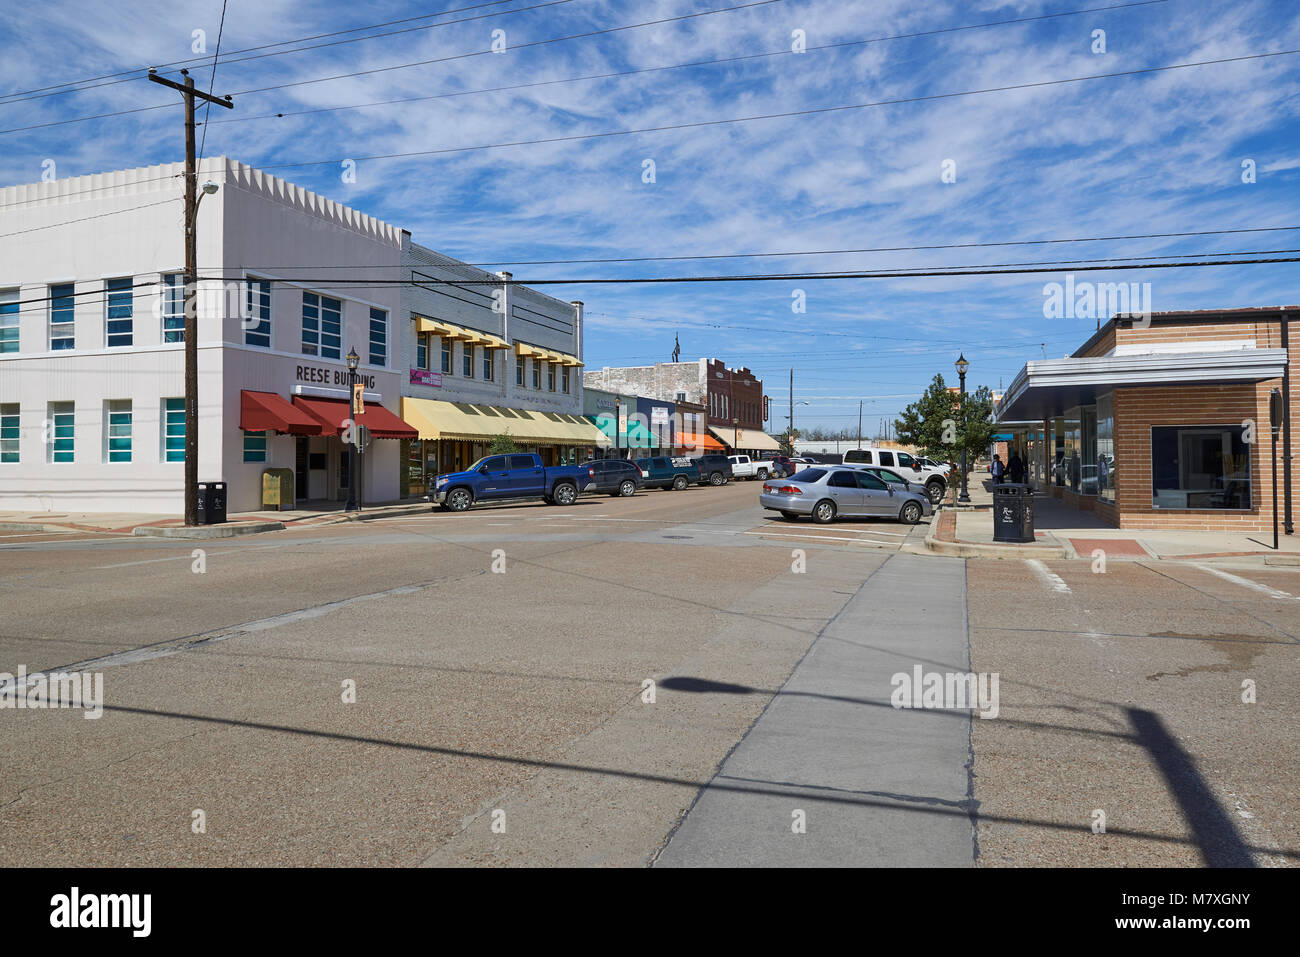 A Street Scene one hot Summers day in downtown Rosenberg in Texas. - Stock Image